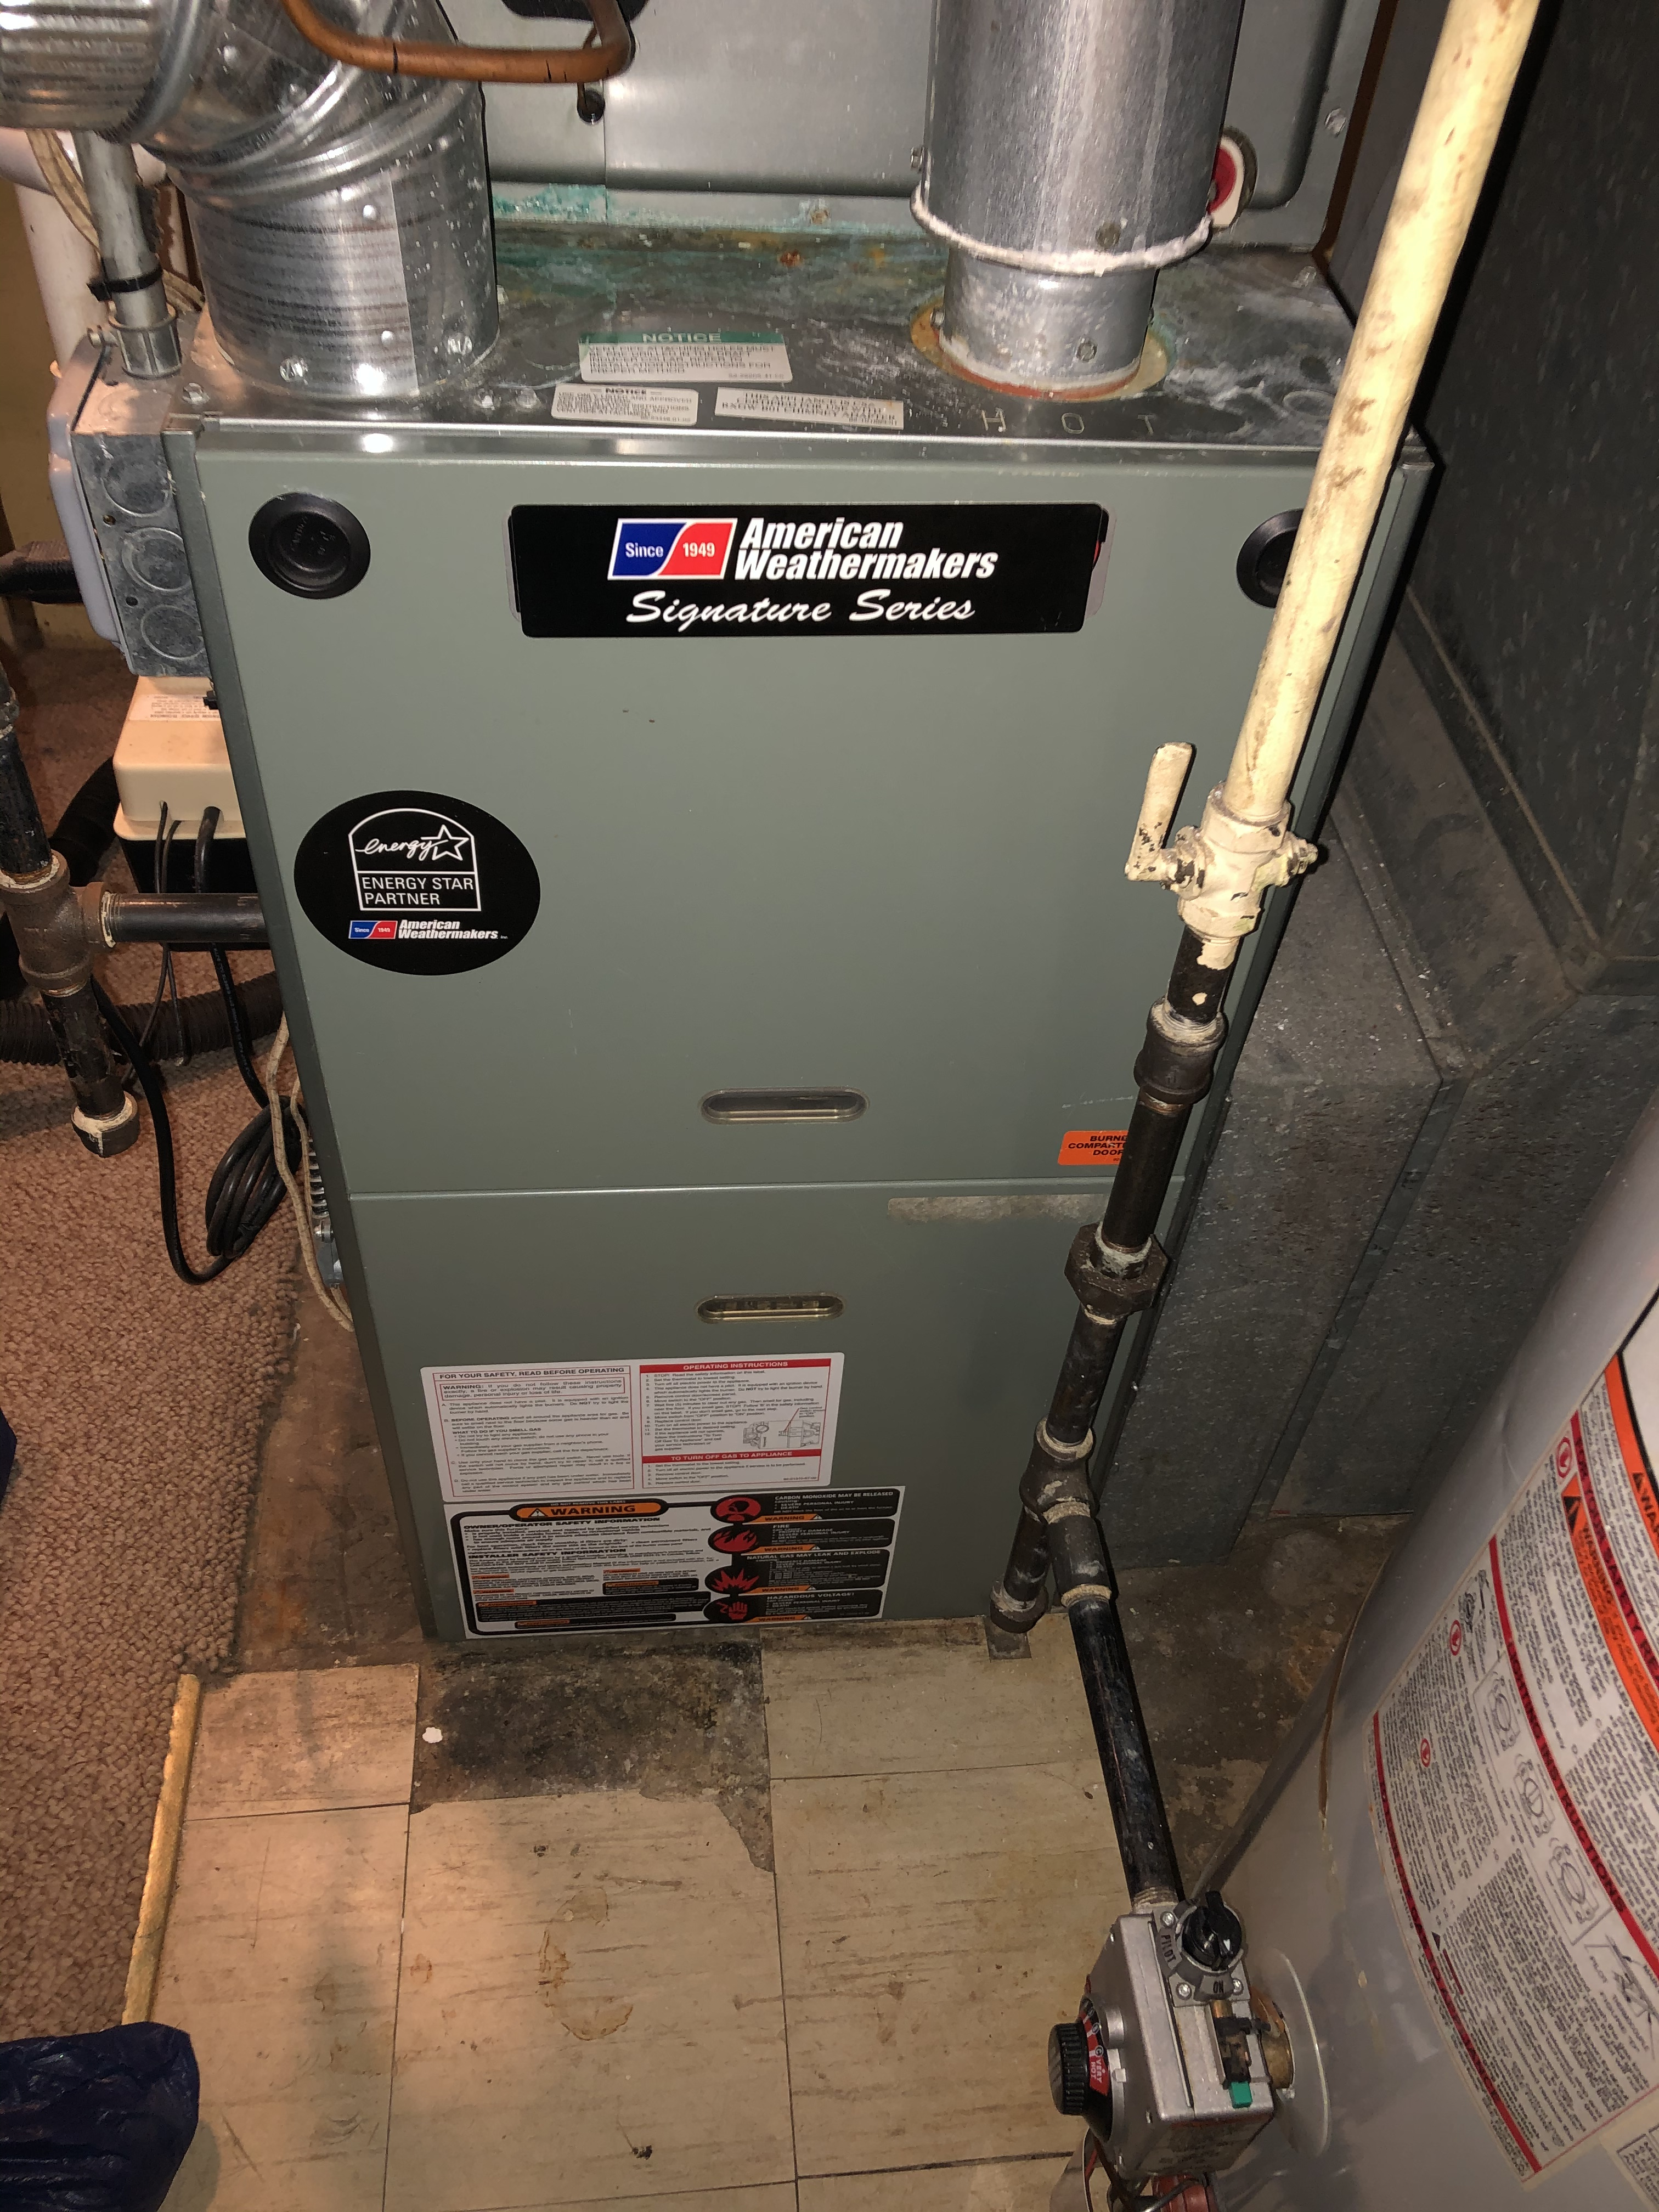 Keep your furnace running in tip top shape this winter and call American Weathermakers today.